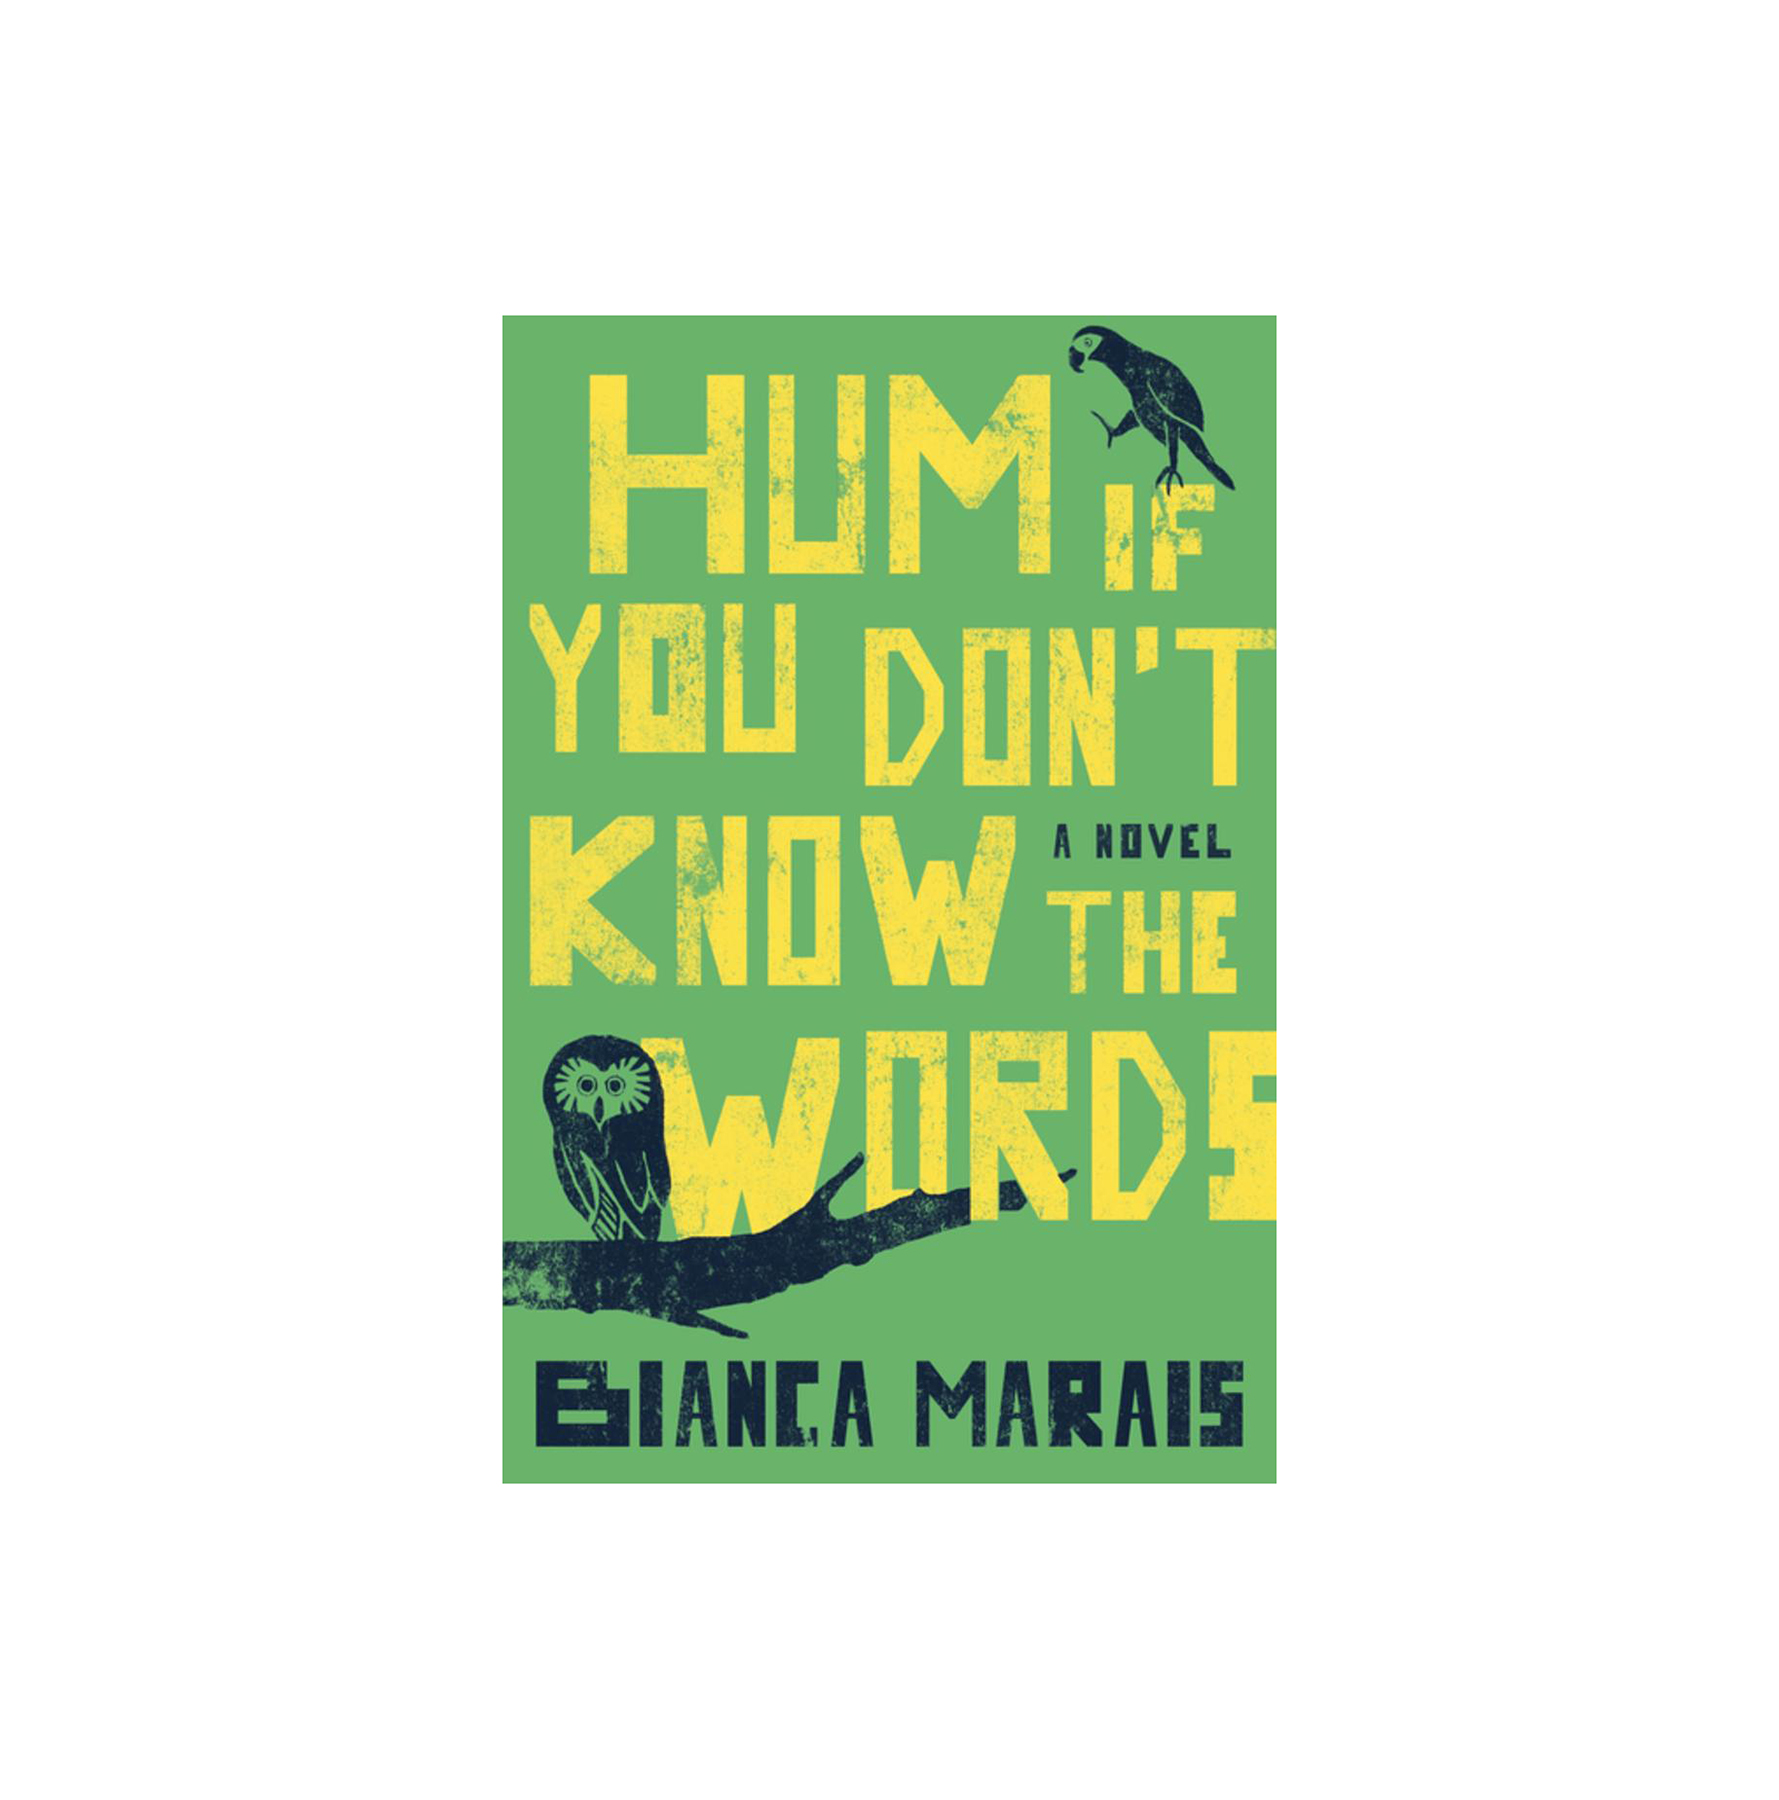 Hum If You Don't Know The Words, by Bianca Marais